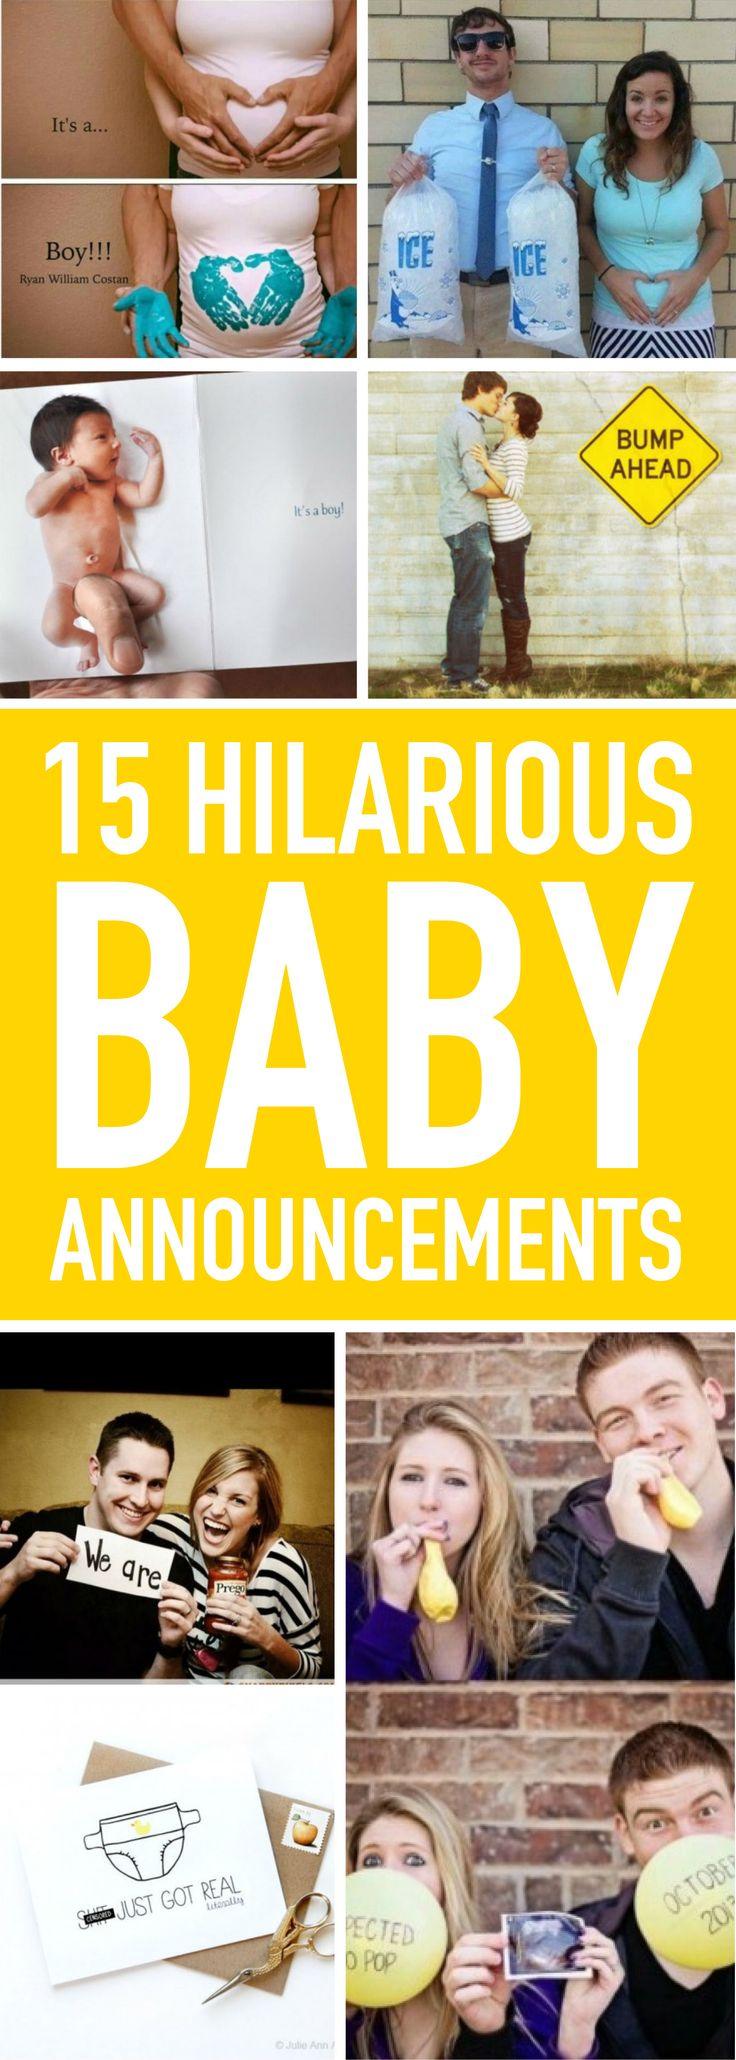 From the outrageous to the tug-at-your-heartstrings, we've rounded up some clever baby announcements!